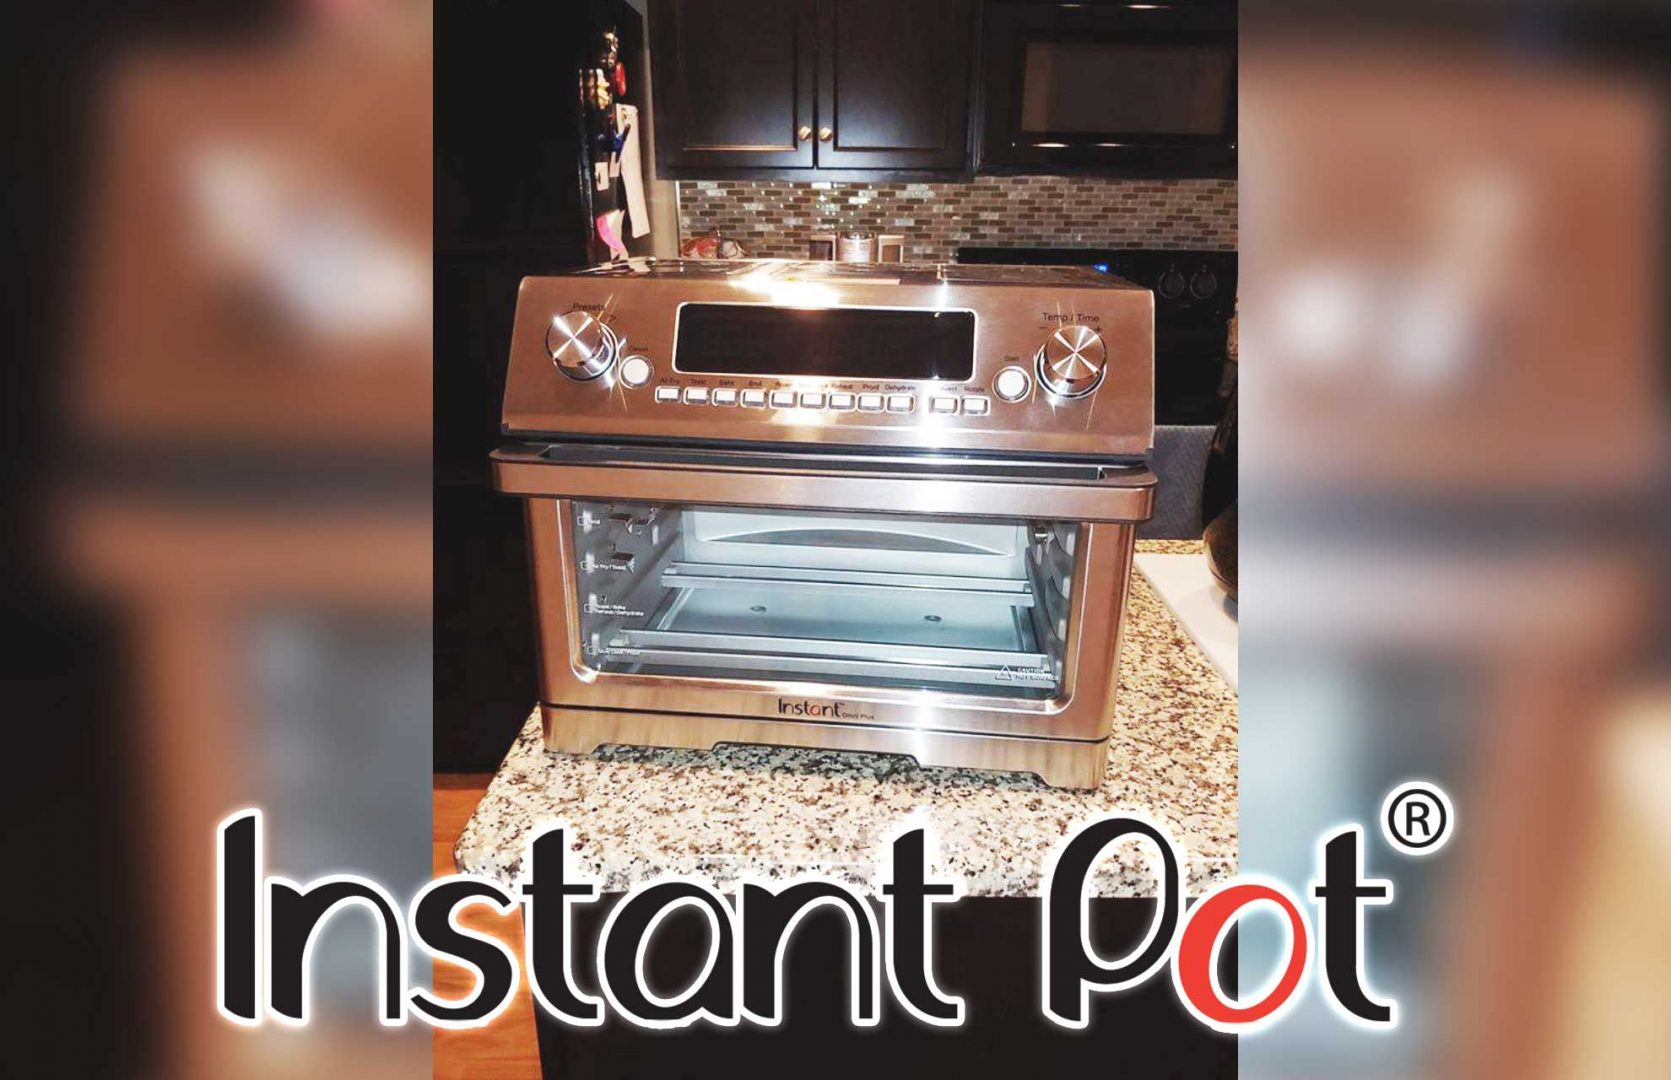 Instant pot air fryer with rotisserie